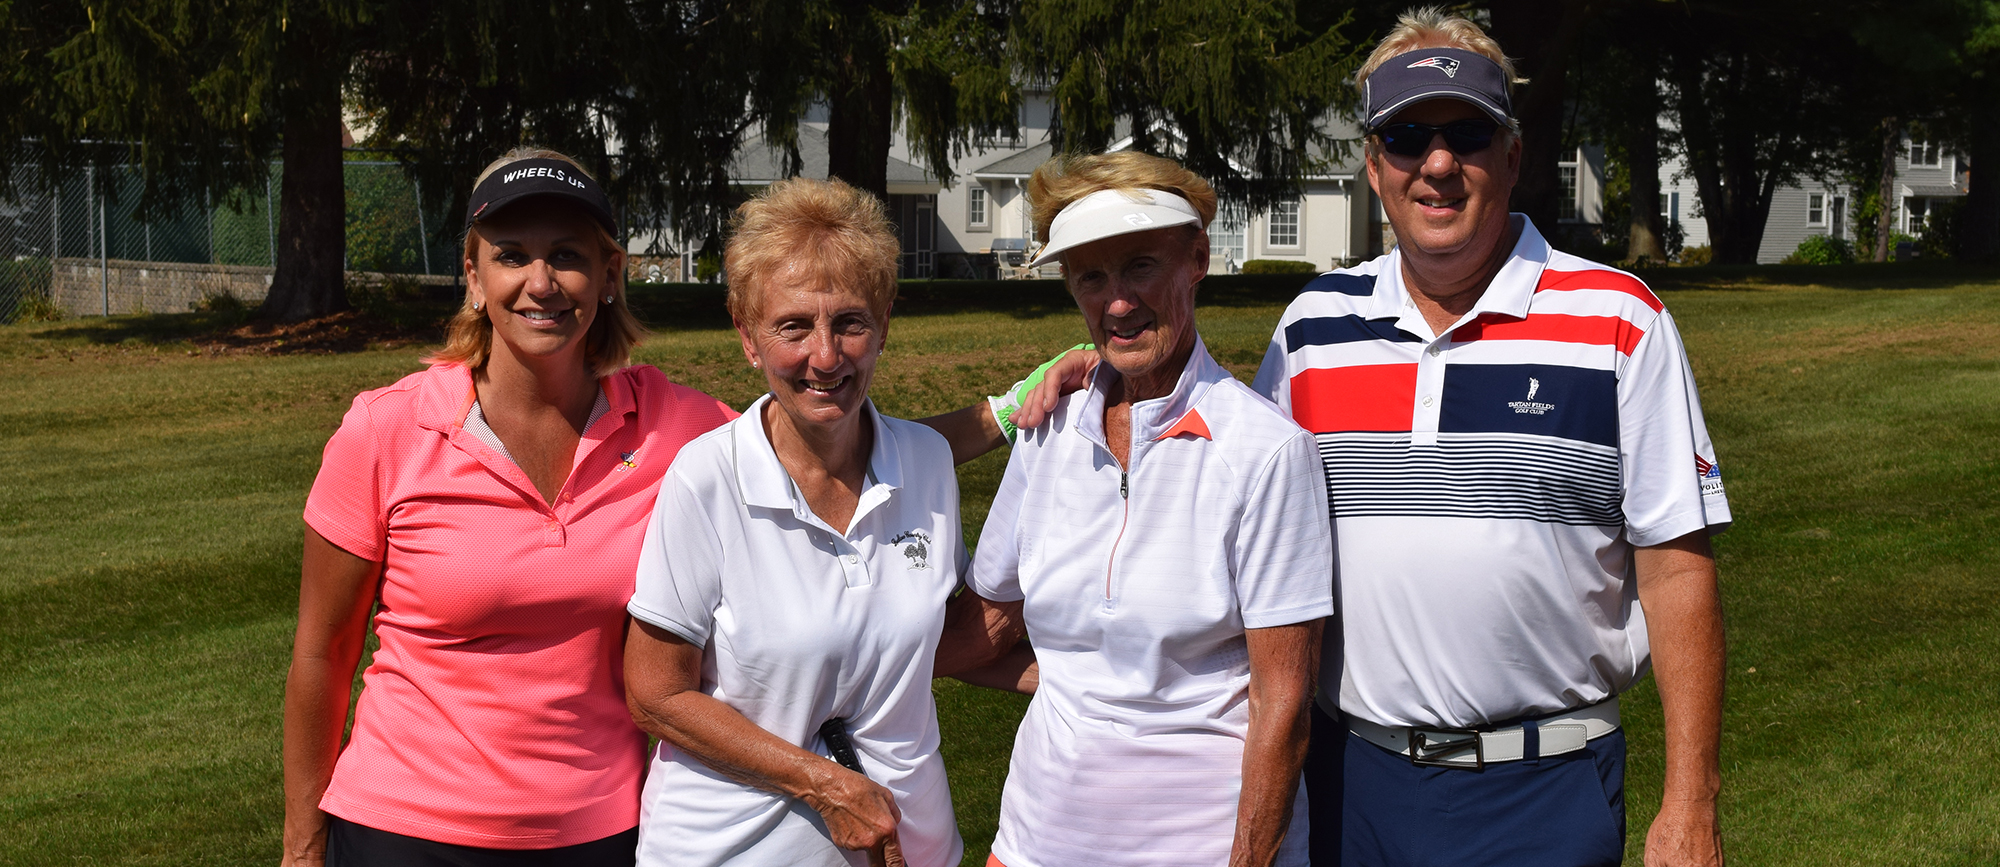 Newly inducted Downes Athletic Hall of Famers Lisa (left) and Bruce (right) Bachmann '83/G '90 were the Guests of Honor at Western New England's 19th Annual Golf Classic on Monday.